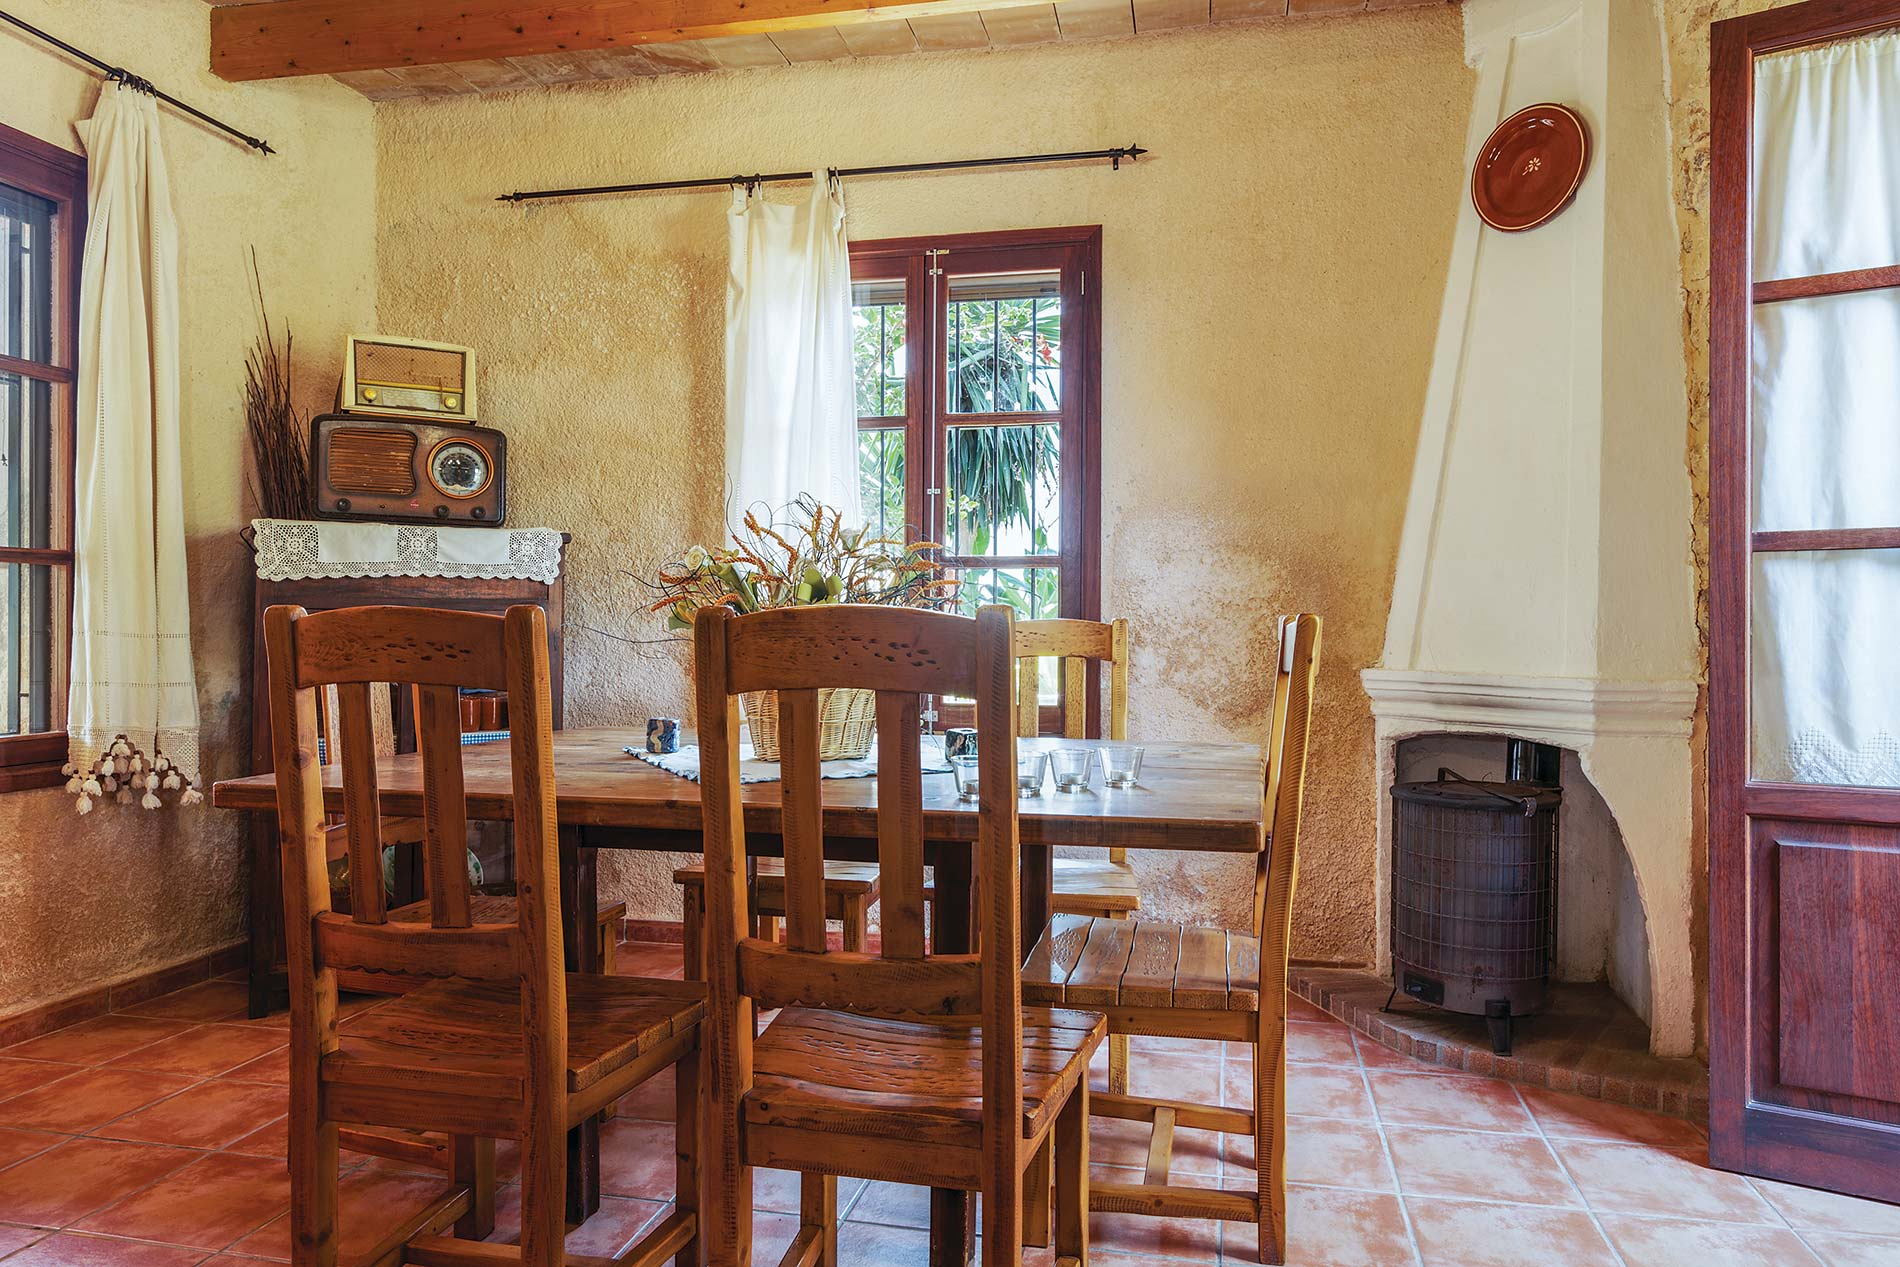 Villa Virolla in Sa Pobla - sleeps 8 people